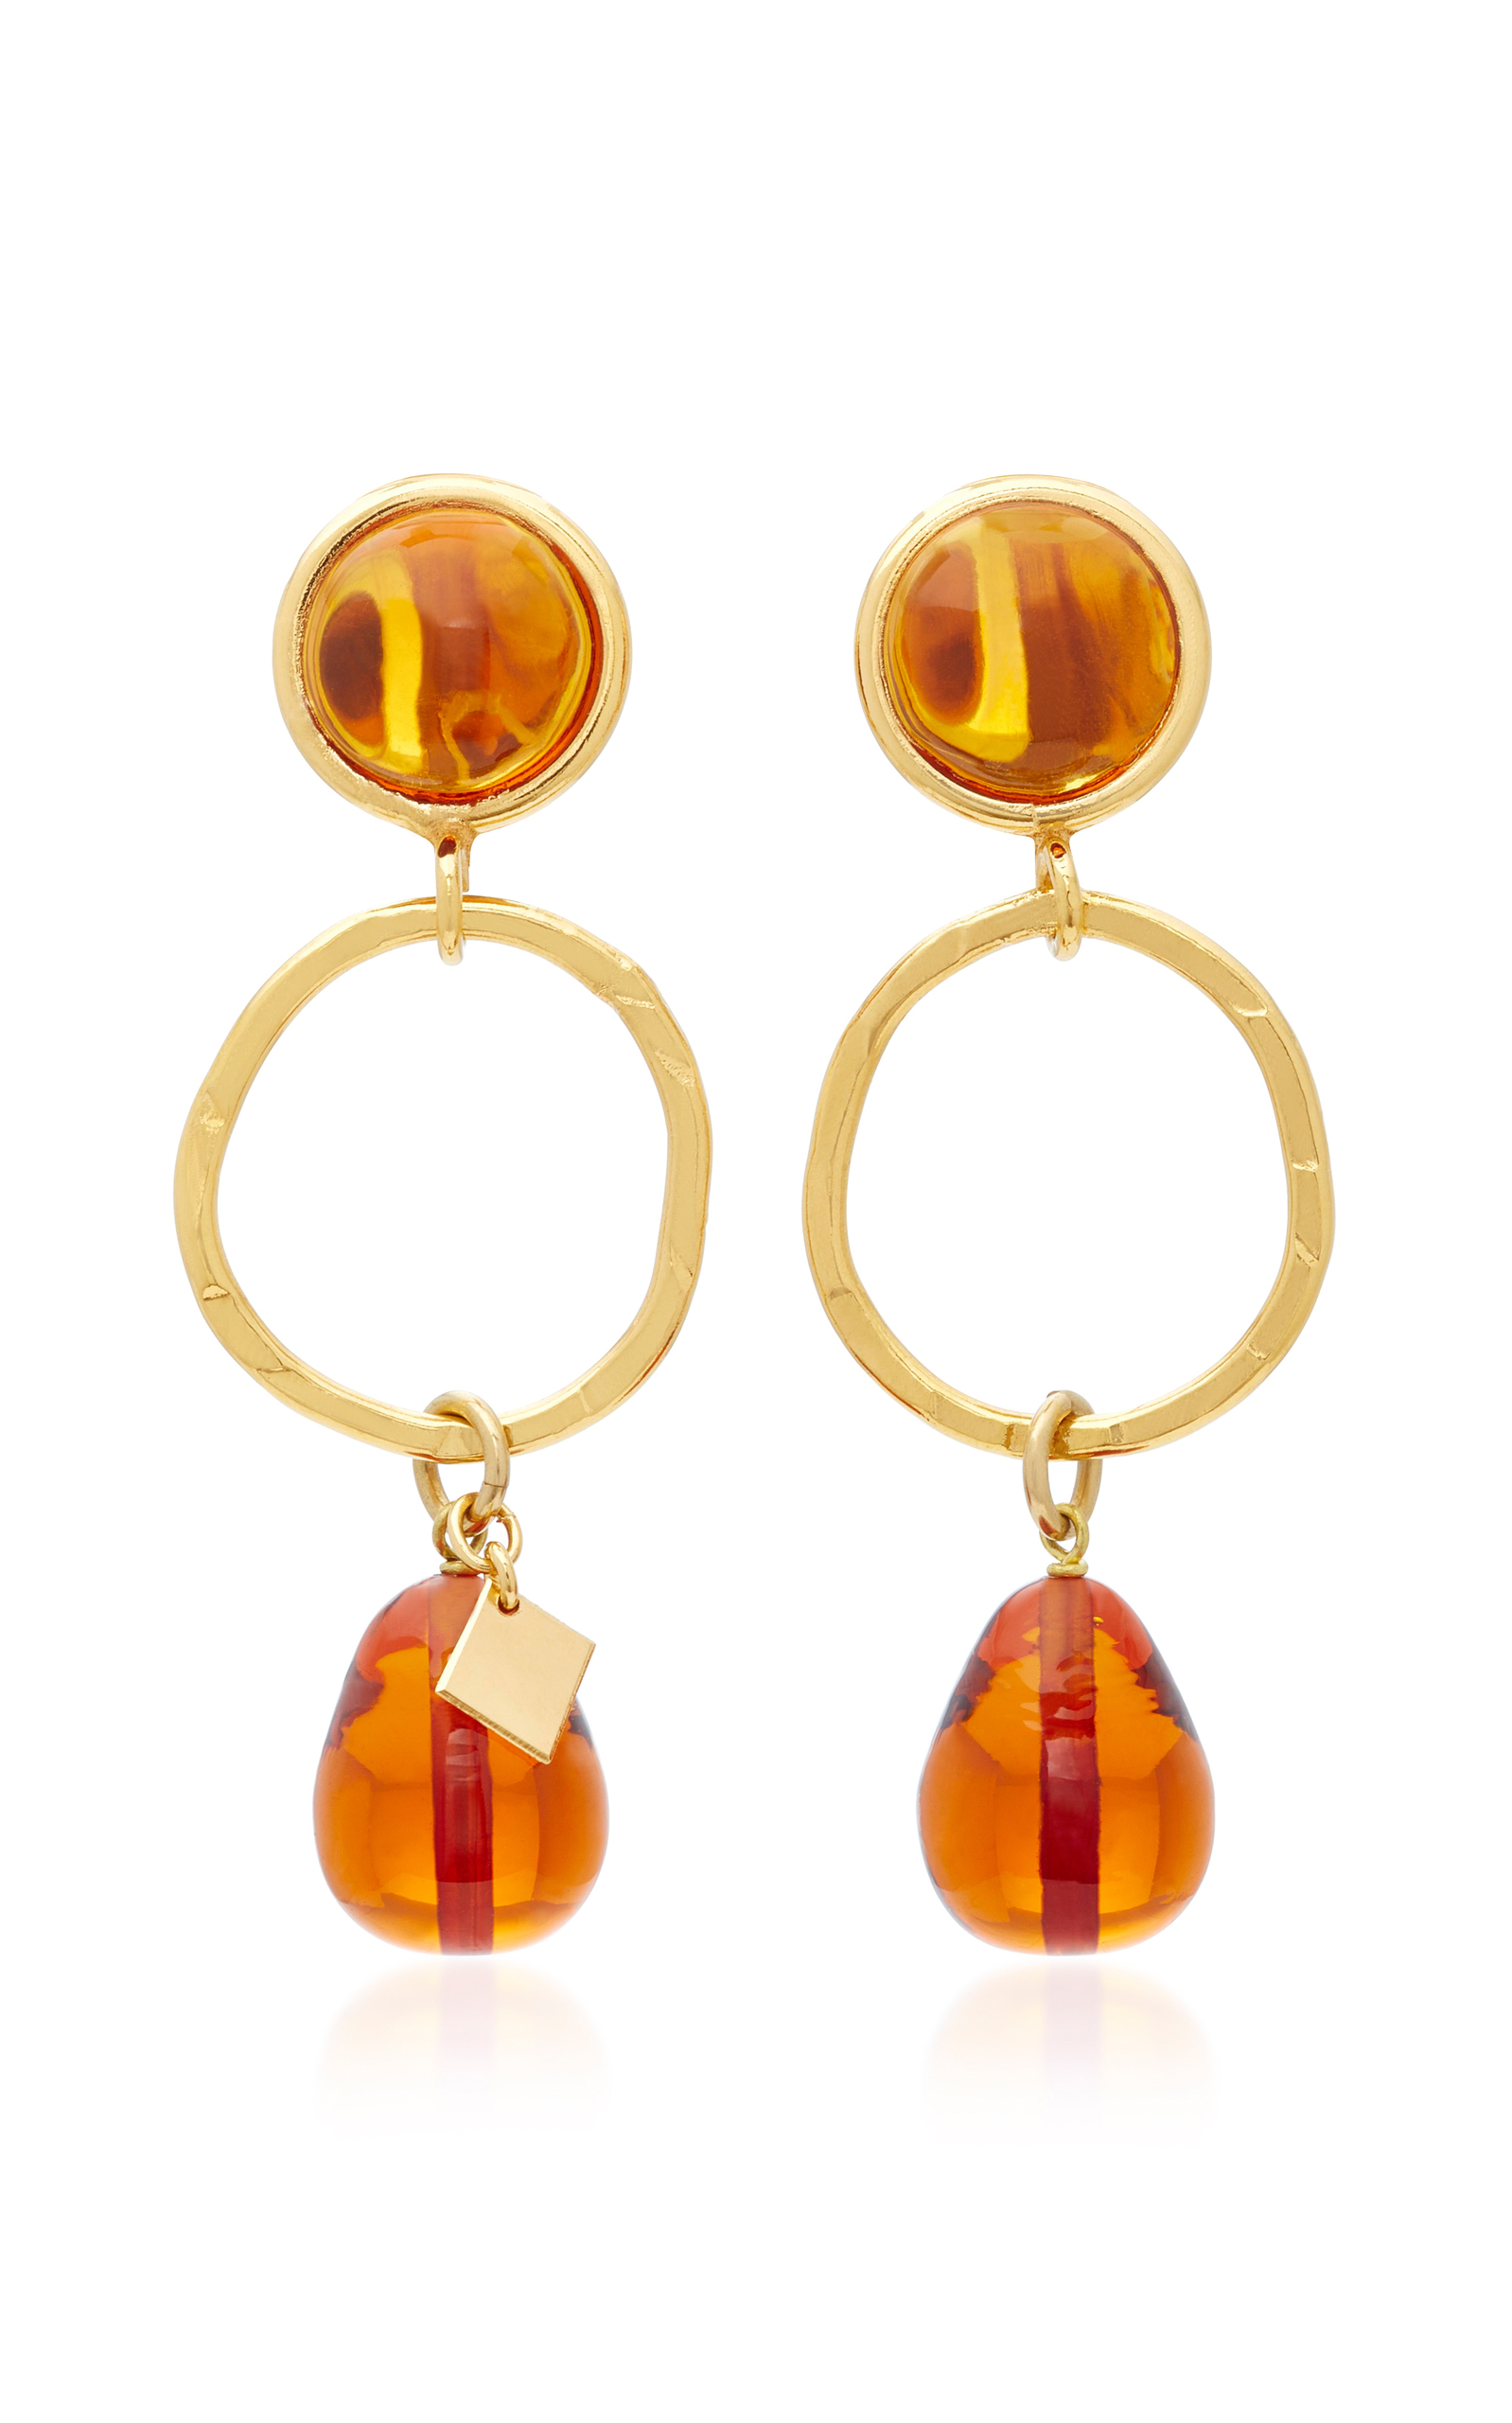 24K Gold-Plated Crystal Earrings Loulou De La Falaise kK0SDJI5T7